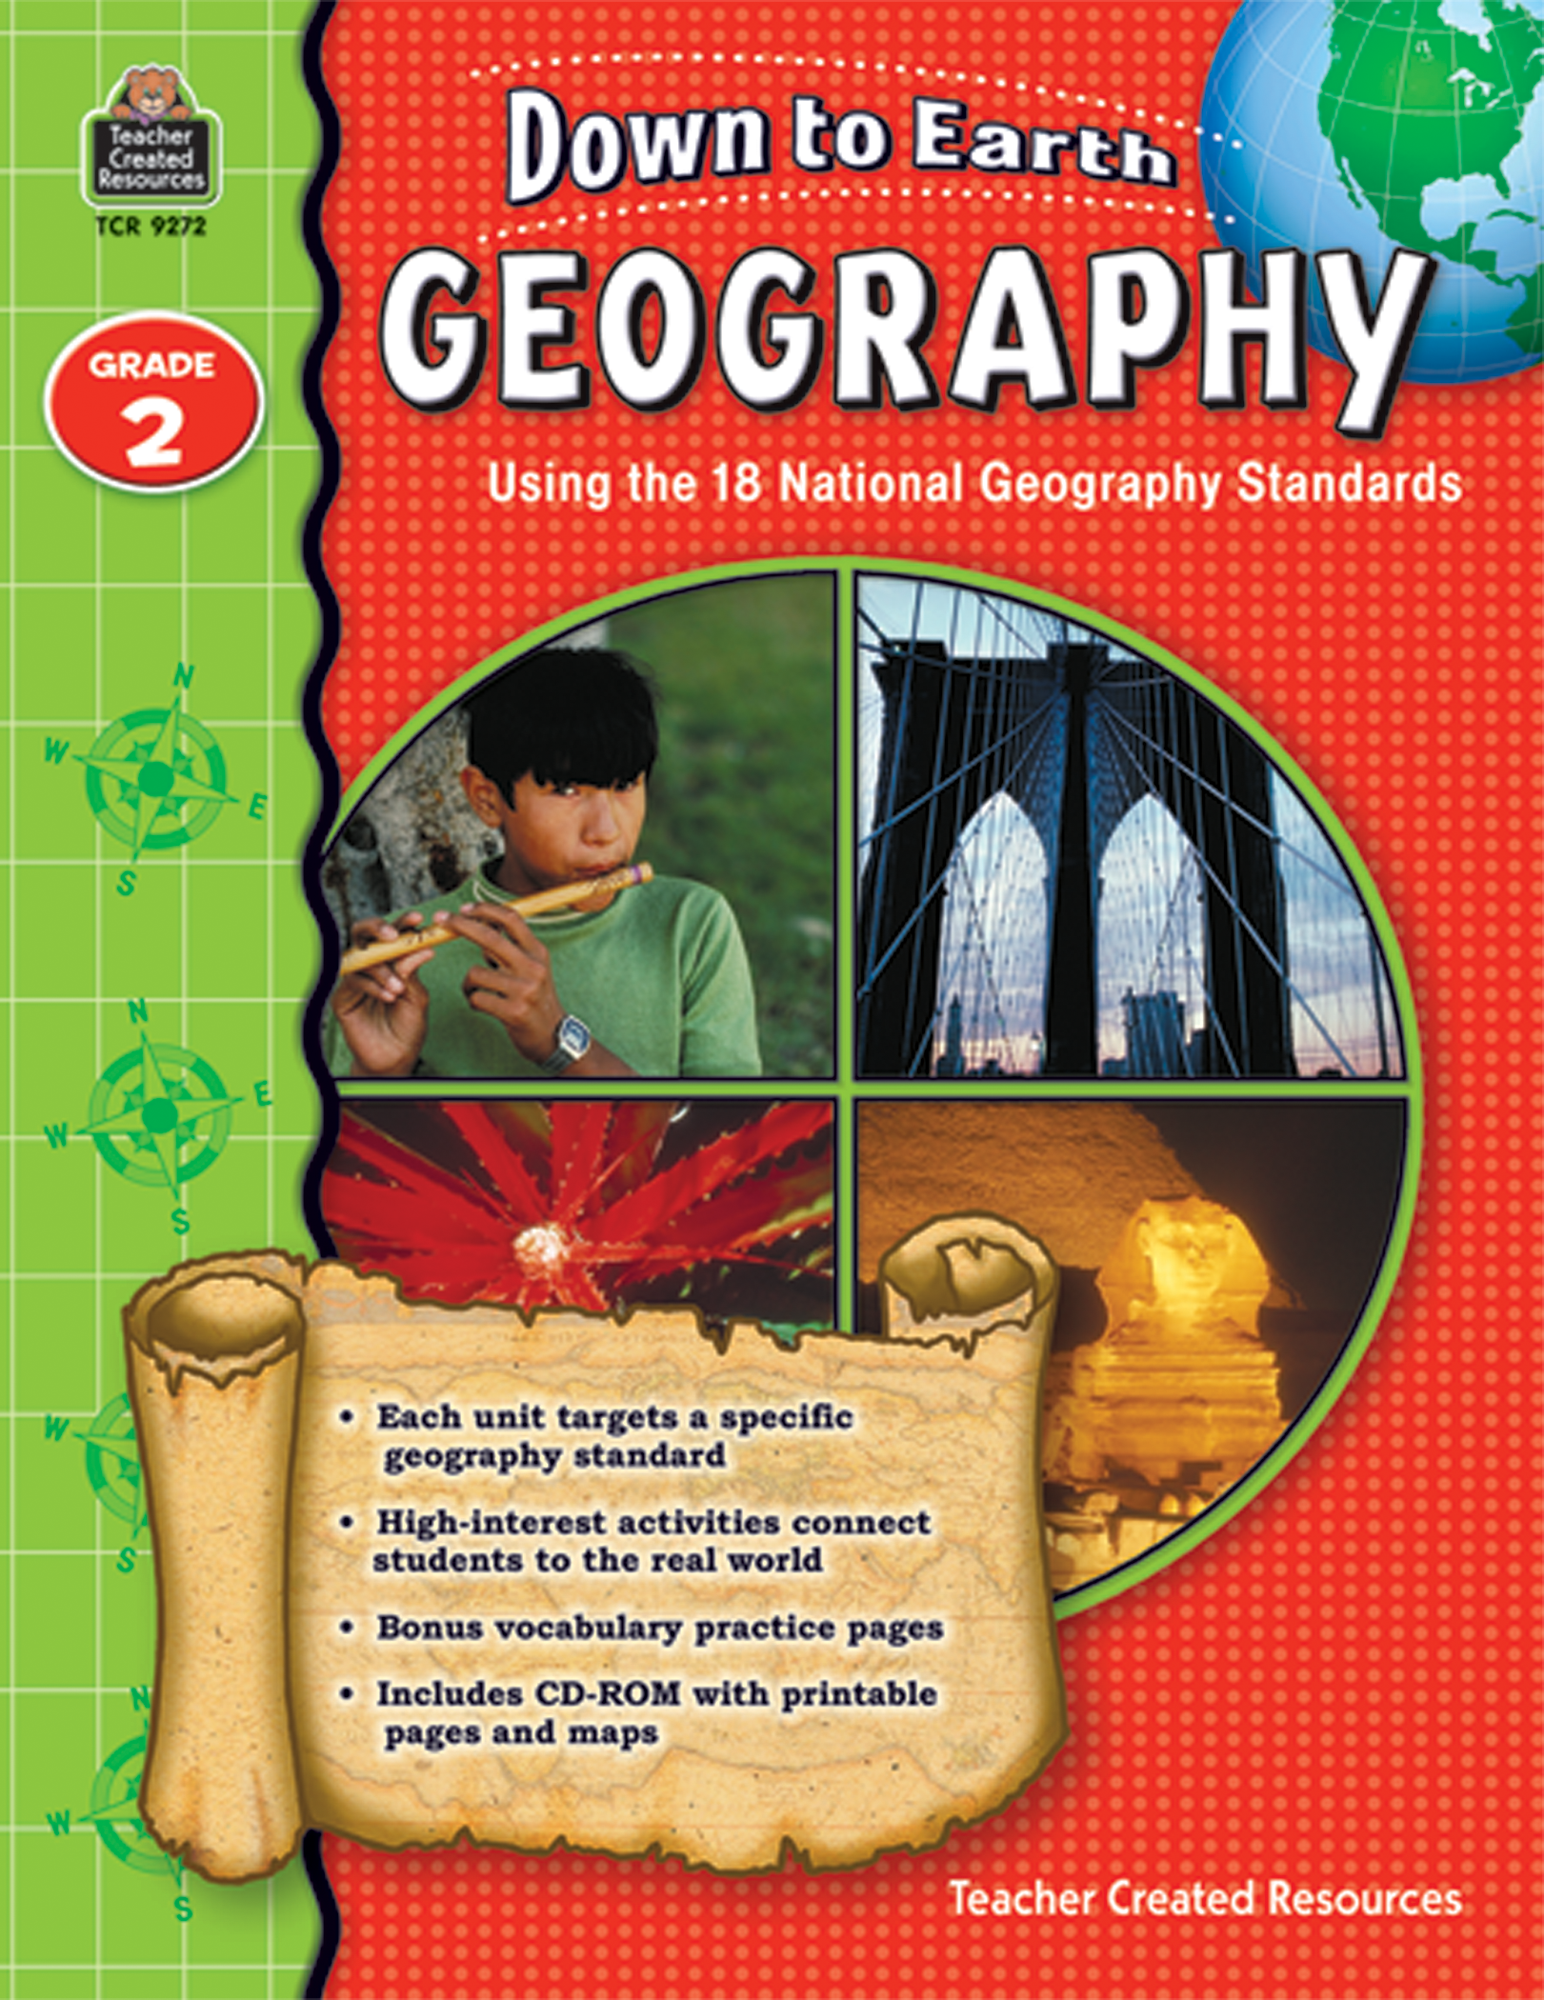 5th Grade Geography: Down To Earth Geography, Grade 2 - TCR9272